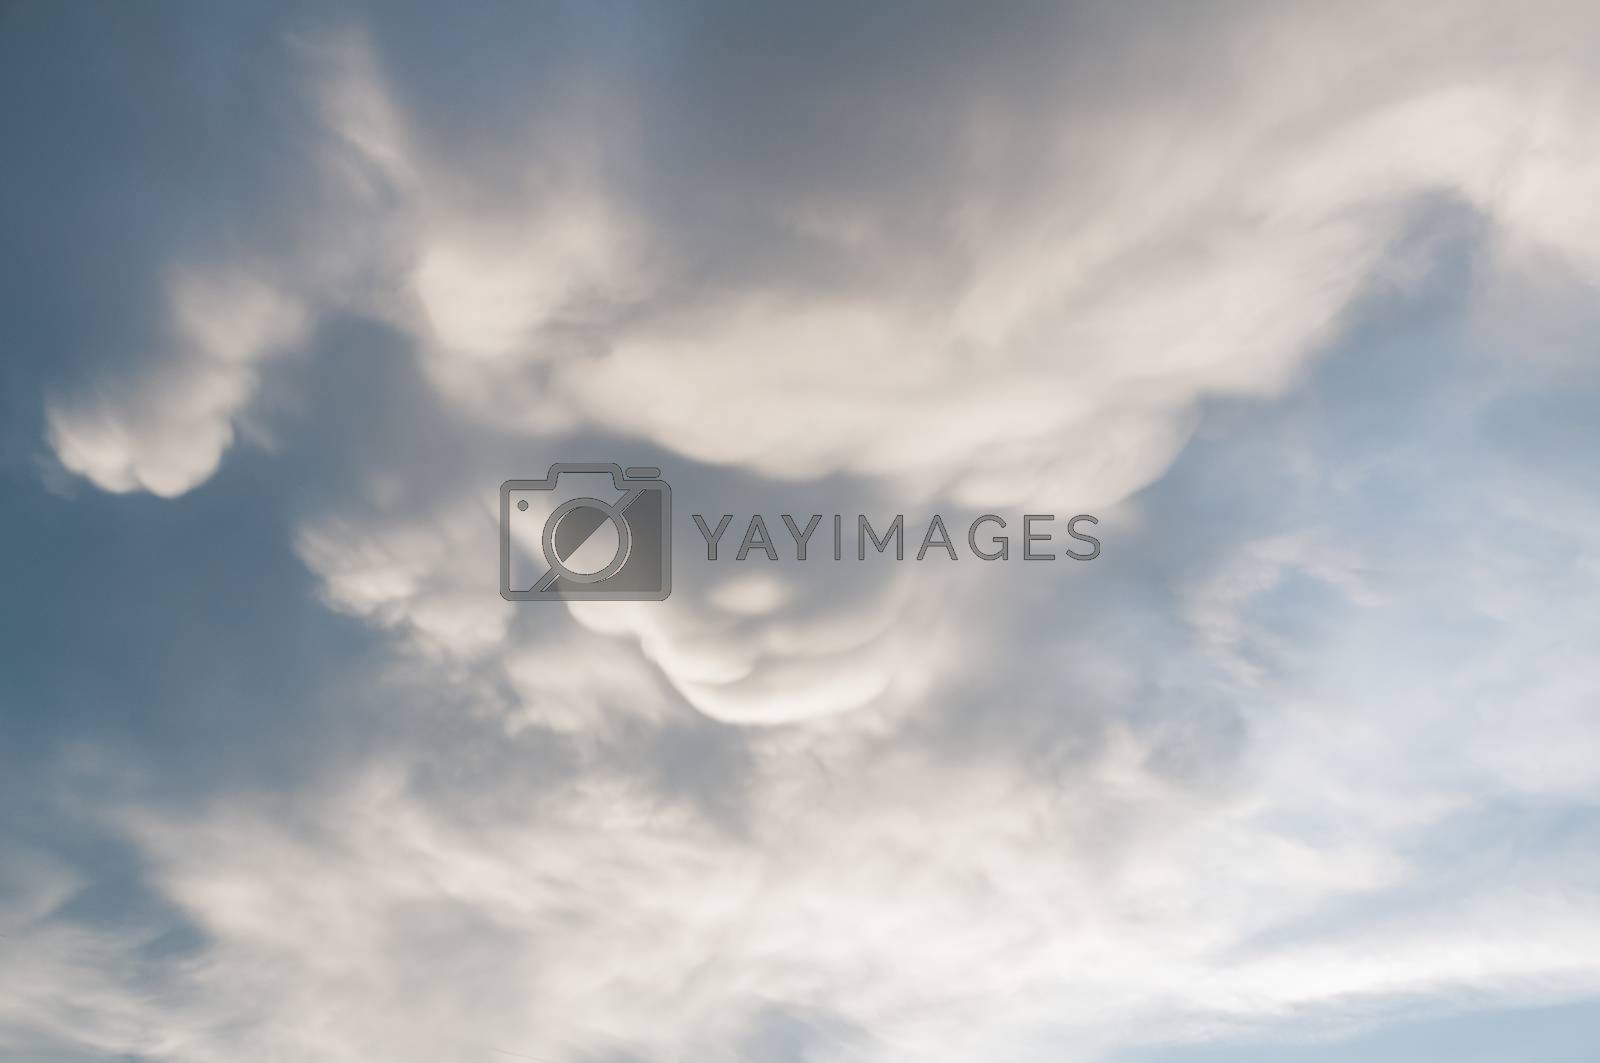 Moving Storm Cloud under the Sunlight shining before Heavy Rain as Concept of Natural disease or Monsoon Hurricane in Rainy season